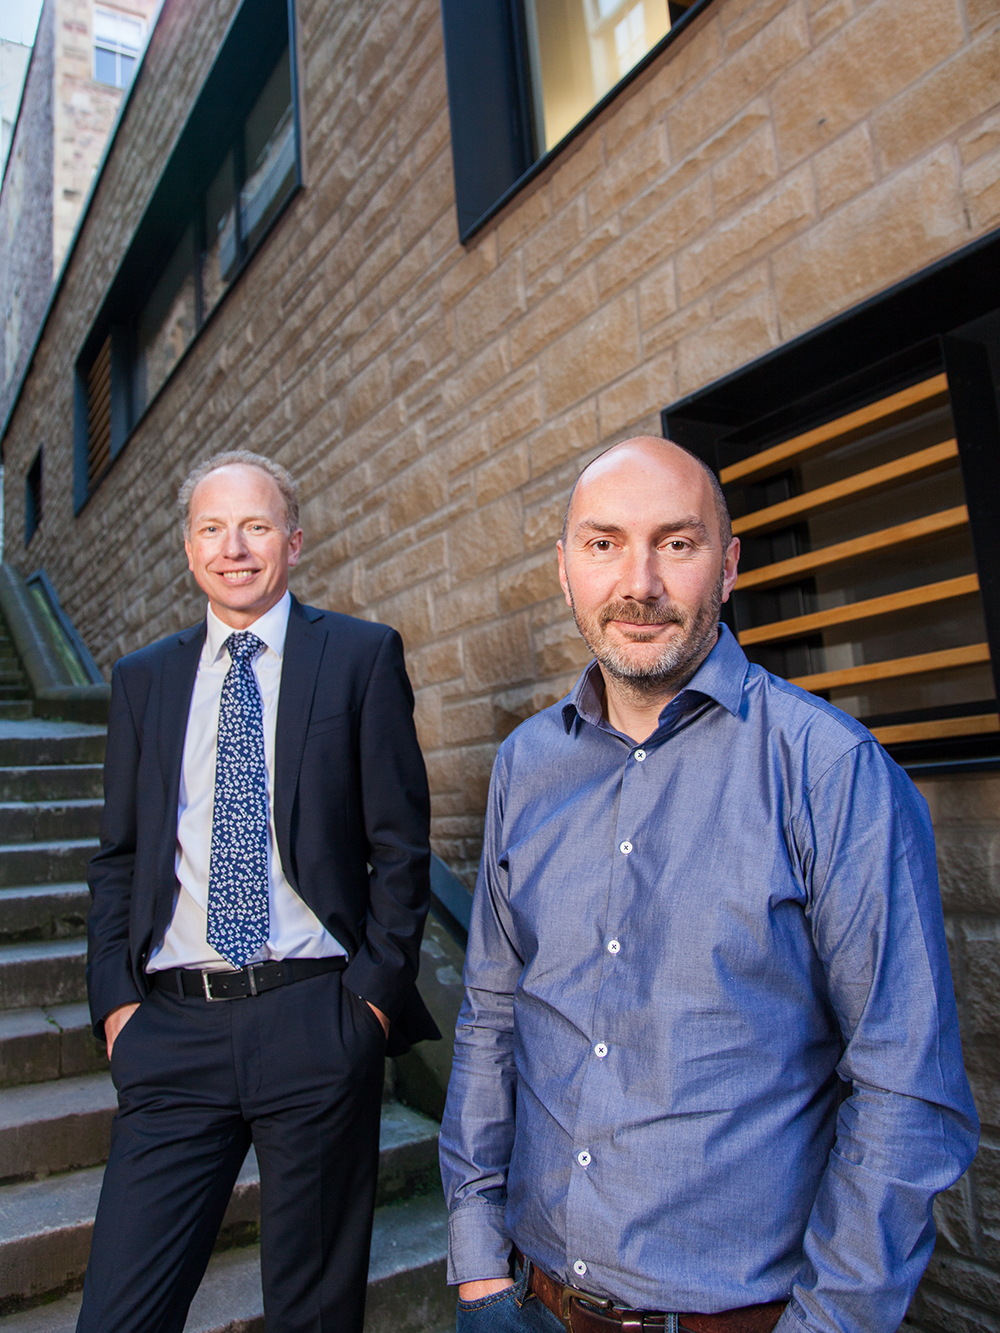 Guy Morgan and Brian Donaldson from Edinburgh Architecture firm Morgan McDonnell